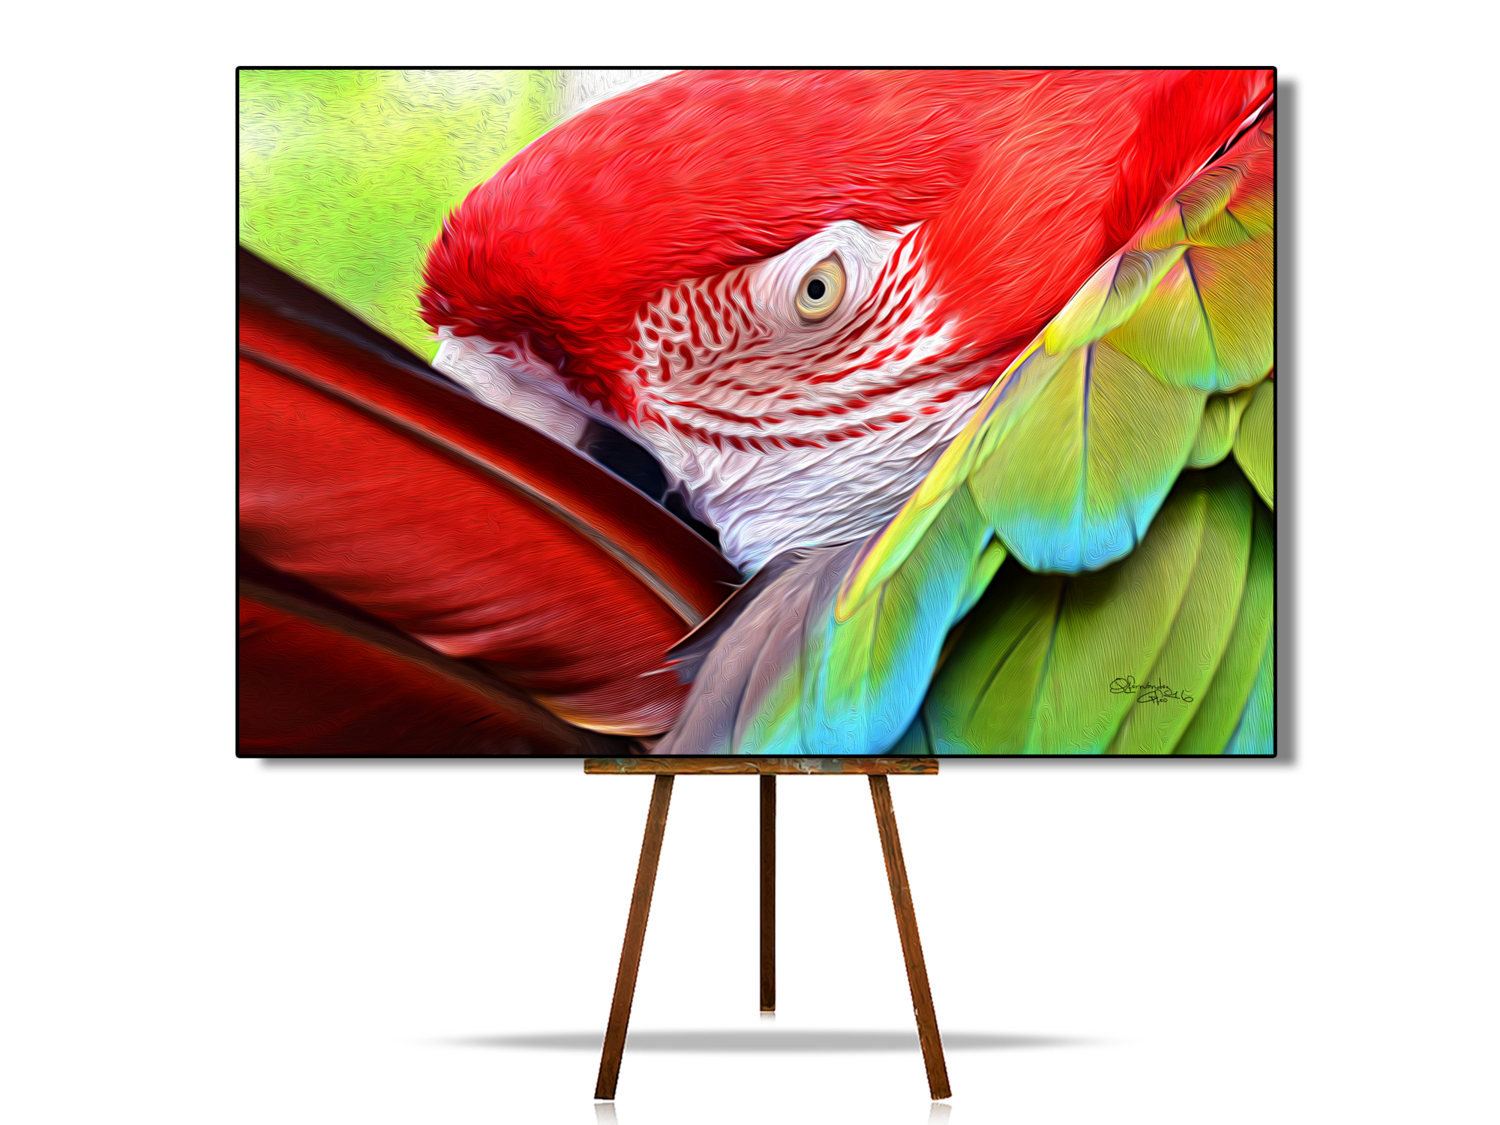 Scarlet Macaw Face | Parrot | Original Artwork | Digital Painting | Canvas Print | Wall Art | Bird Lover Gift | Wonderful Colors and Texture